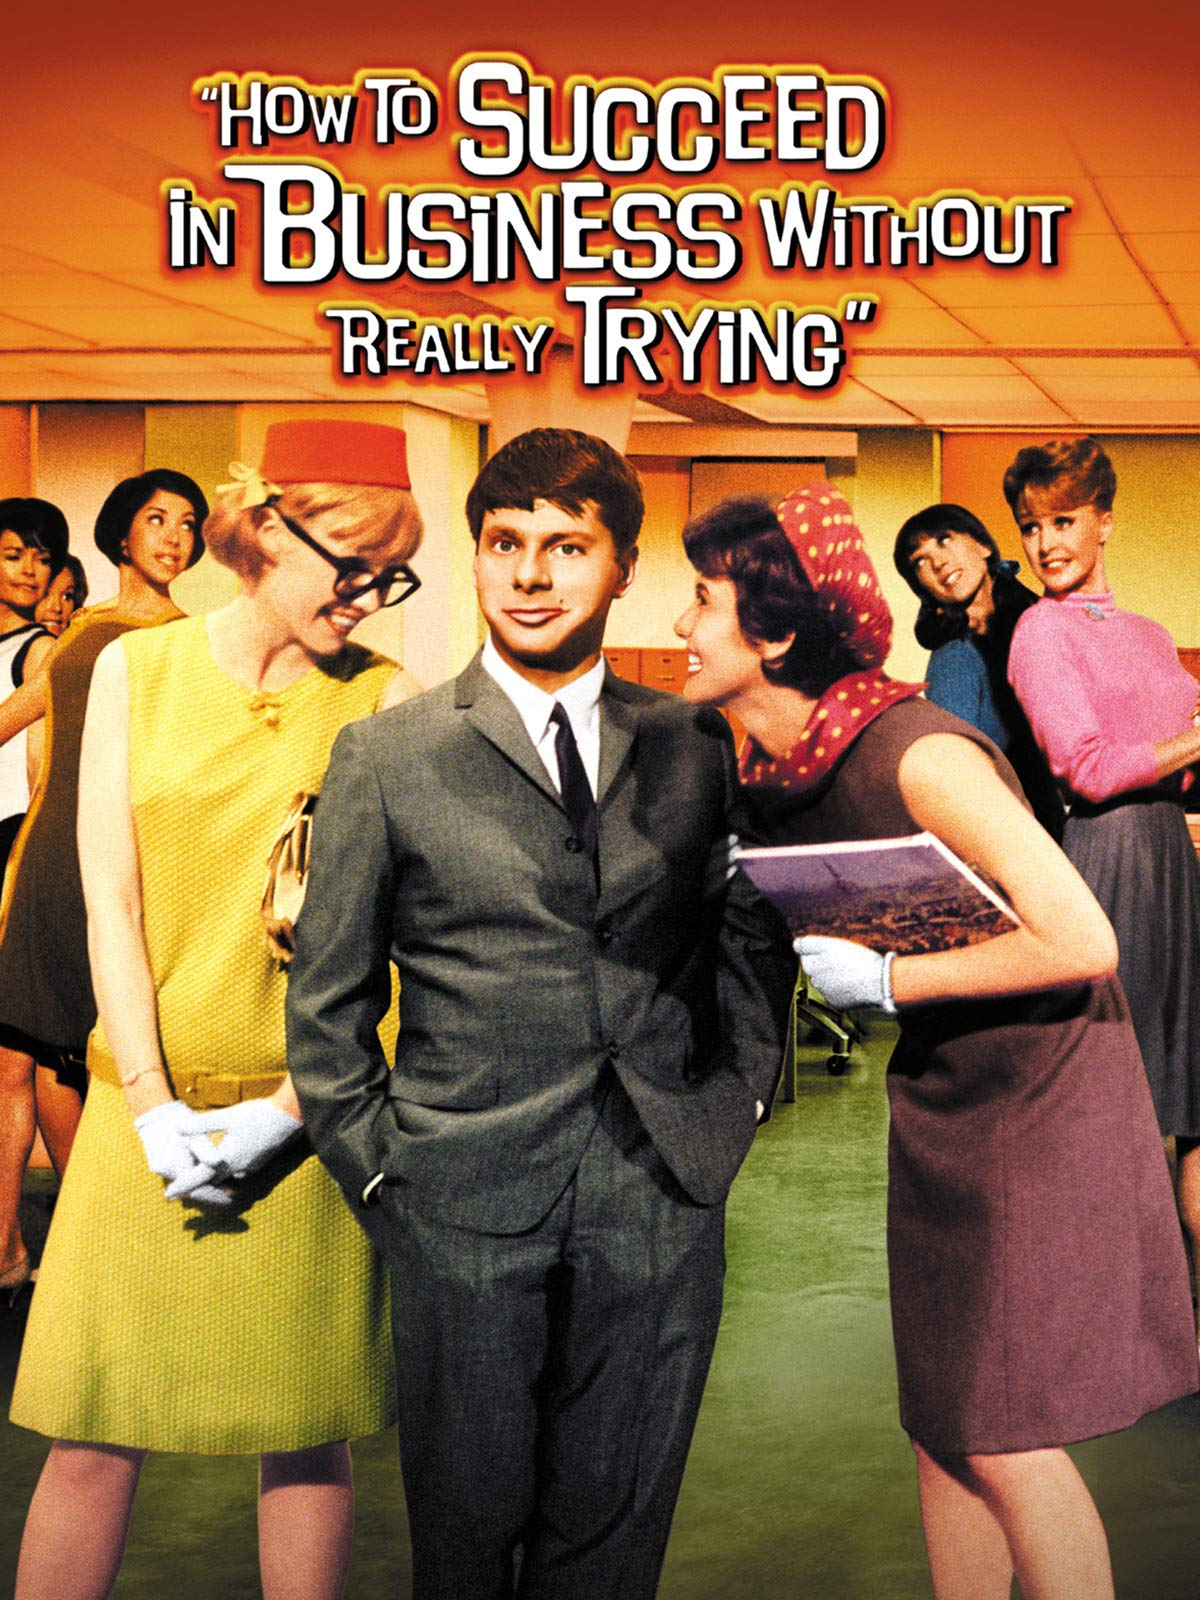 How to Succeed In Business Without Really Trying on Amazon Prime Video UK